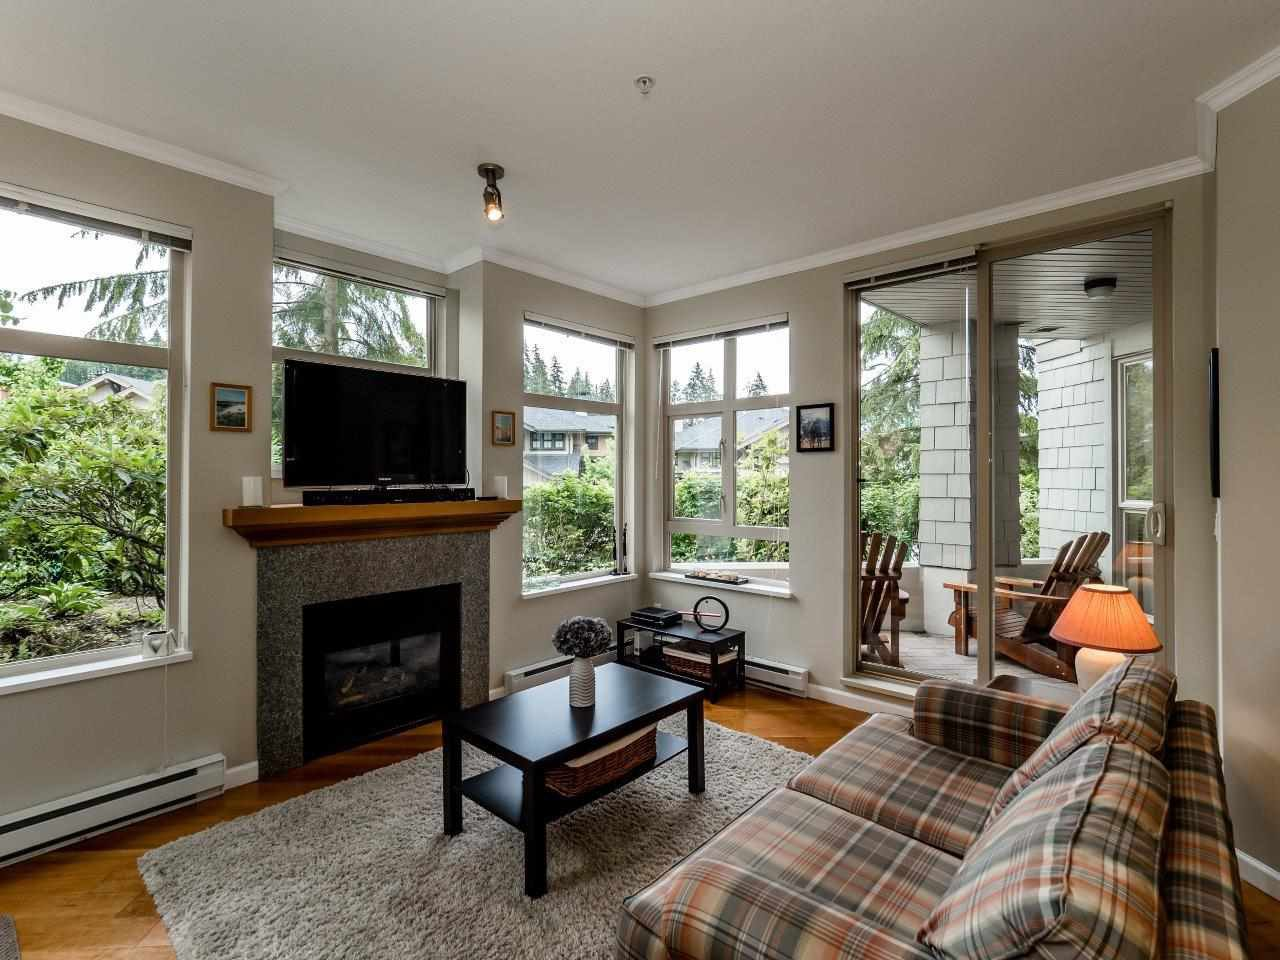 """Photo 2: Photos: 224 580 RAVEN WOODS Drive in North Vancouver: Roche Point Condo for sale in """"SEASONS @ RAVENWOODS"""" : MLS®# R2069286"""